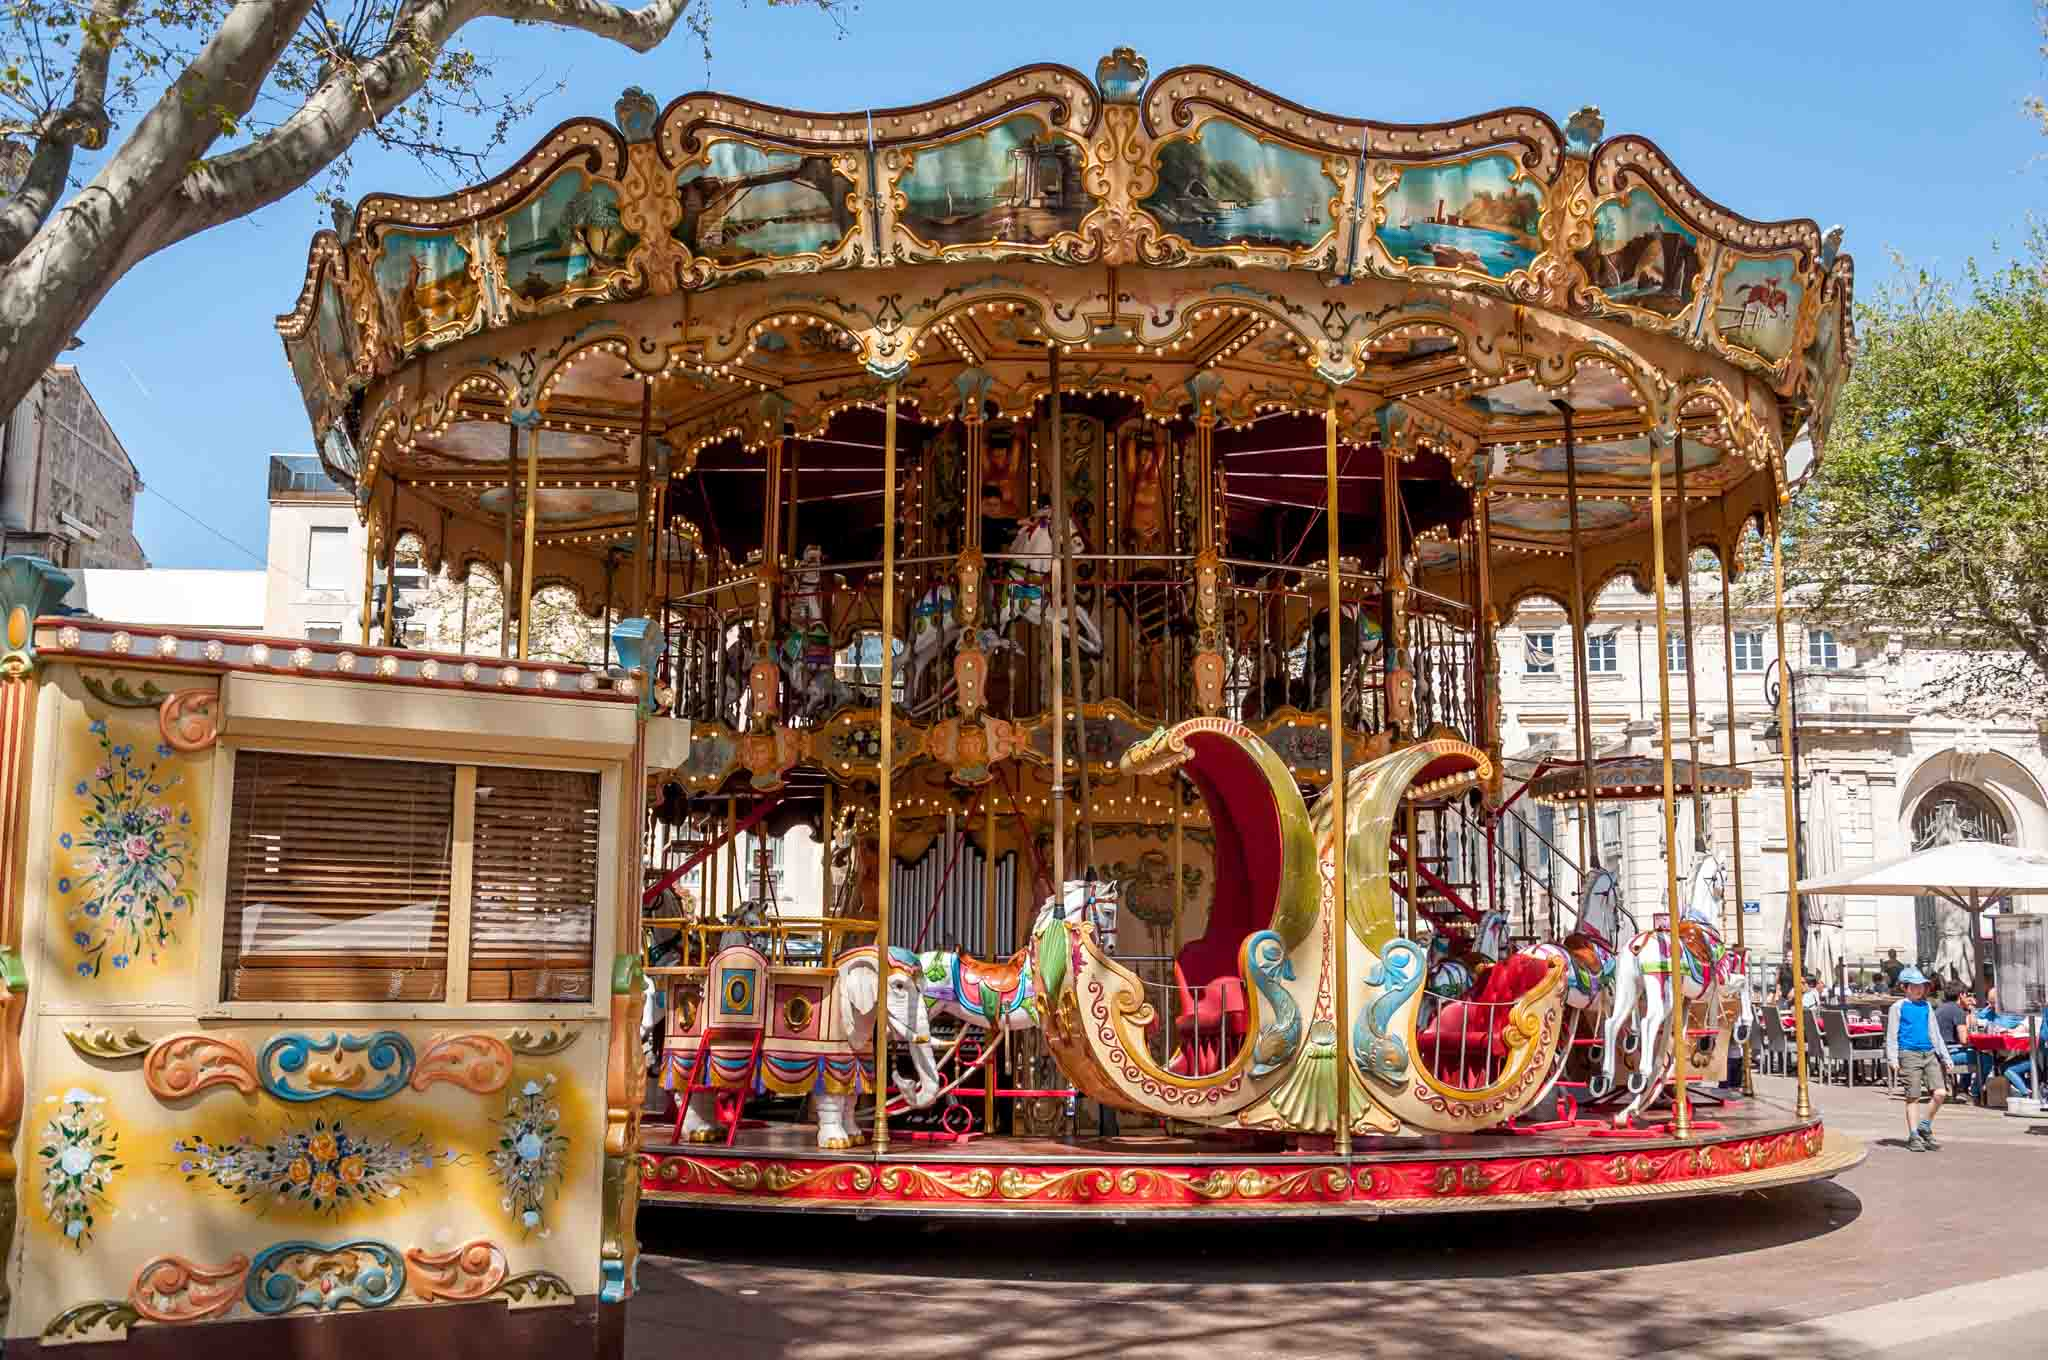 Carousel at the Place de l'Horloge in Avignon, France